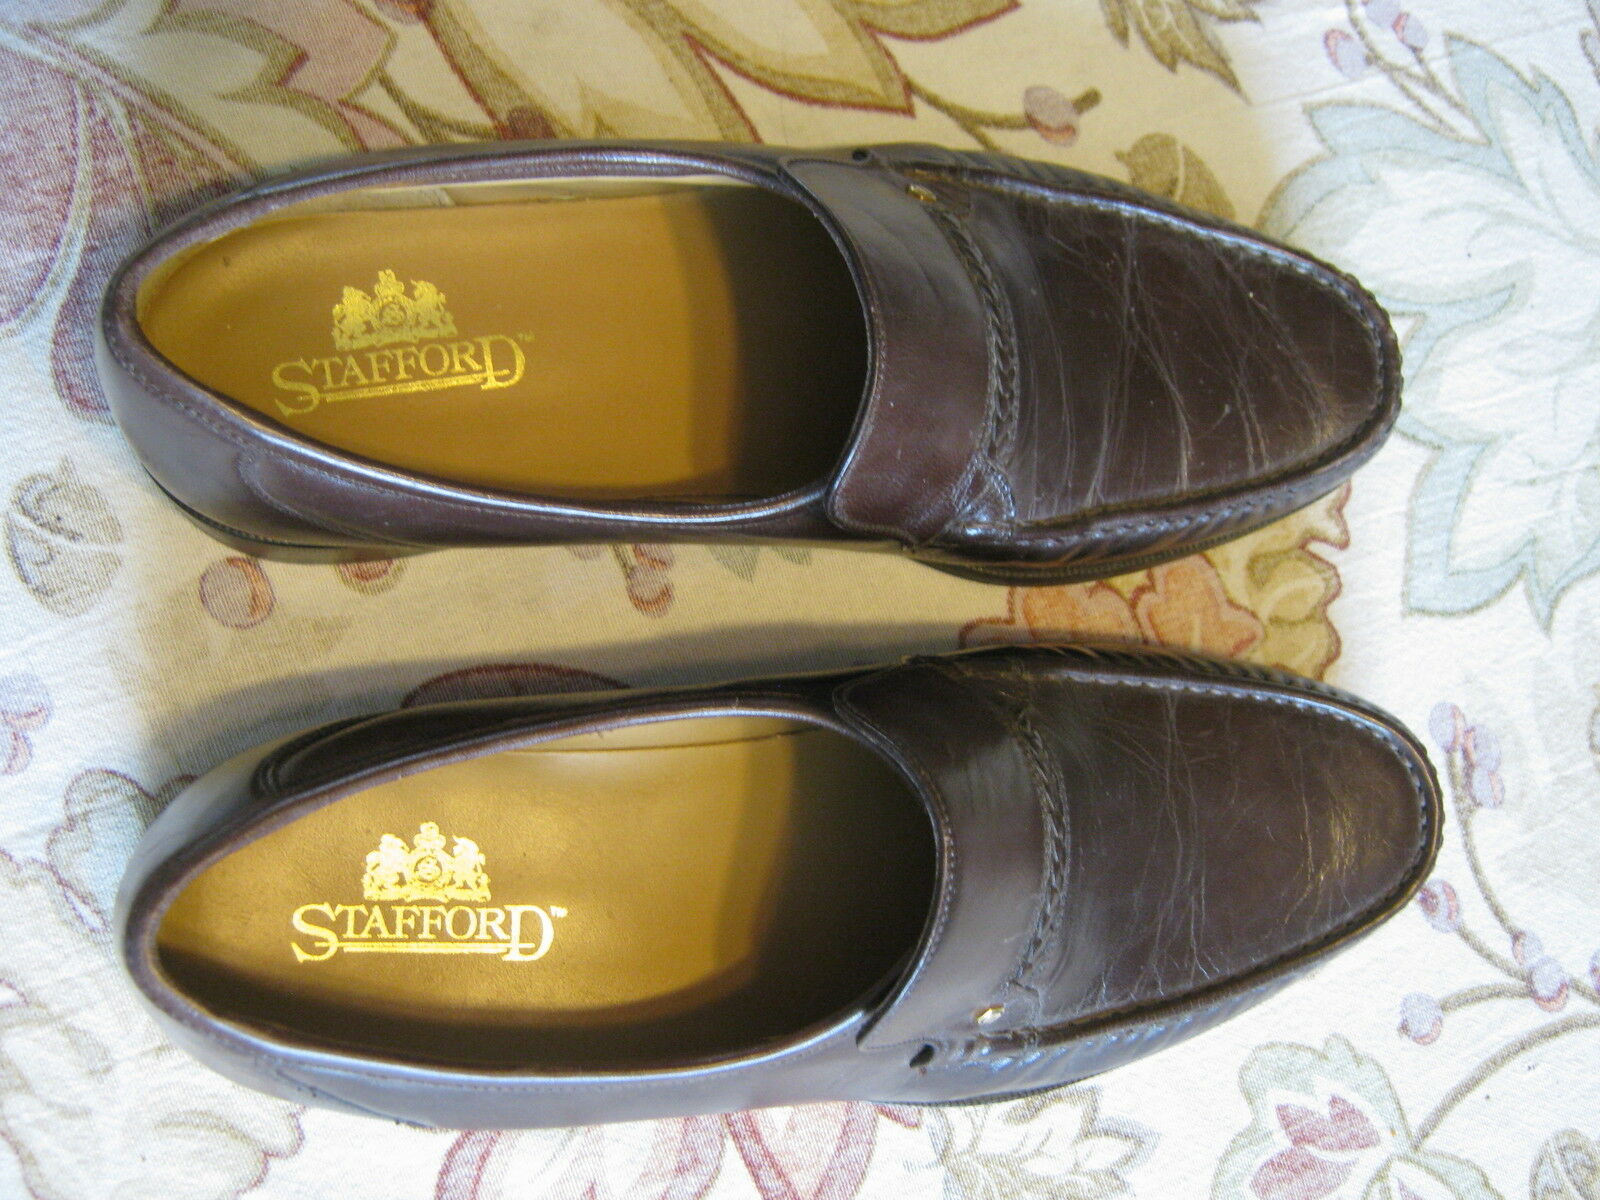 STAFFORD MEN'S LOAFER / SLIP ON SHOES 10 1/2 M BRAID BROWN LEATHER w TOP BRAID M NO BOX 42be4c